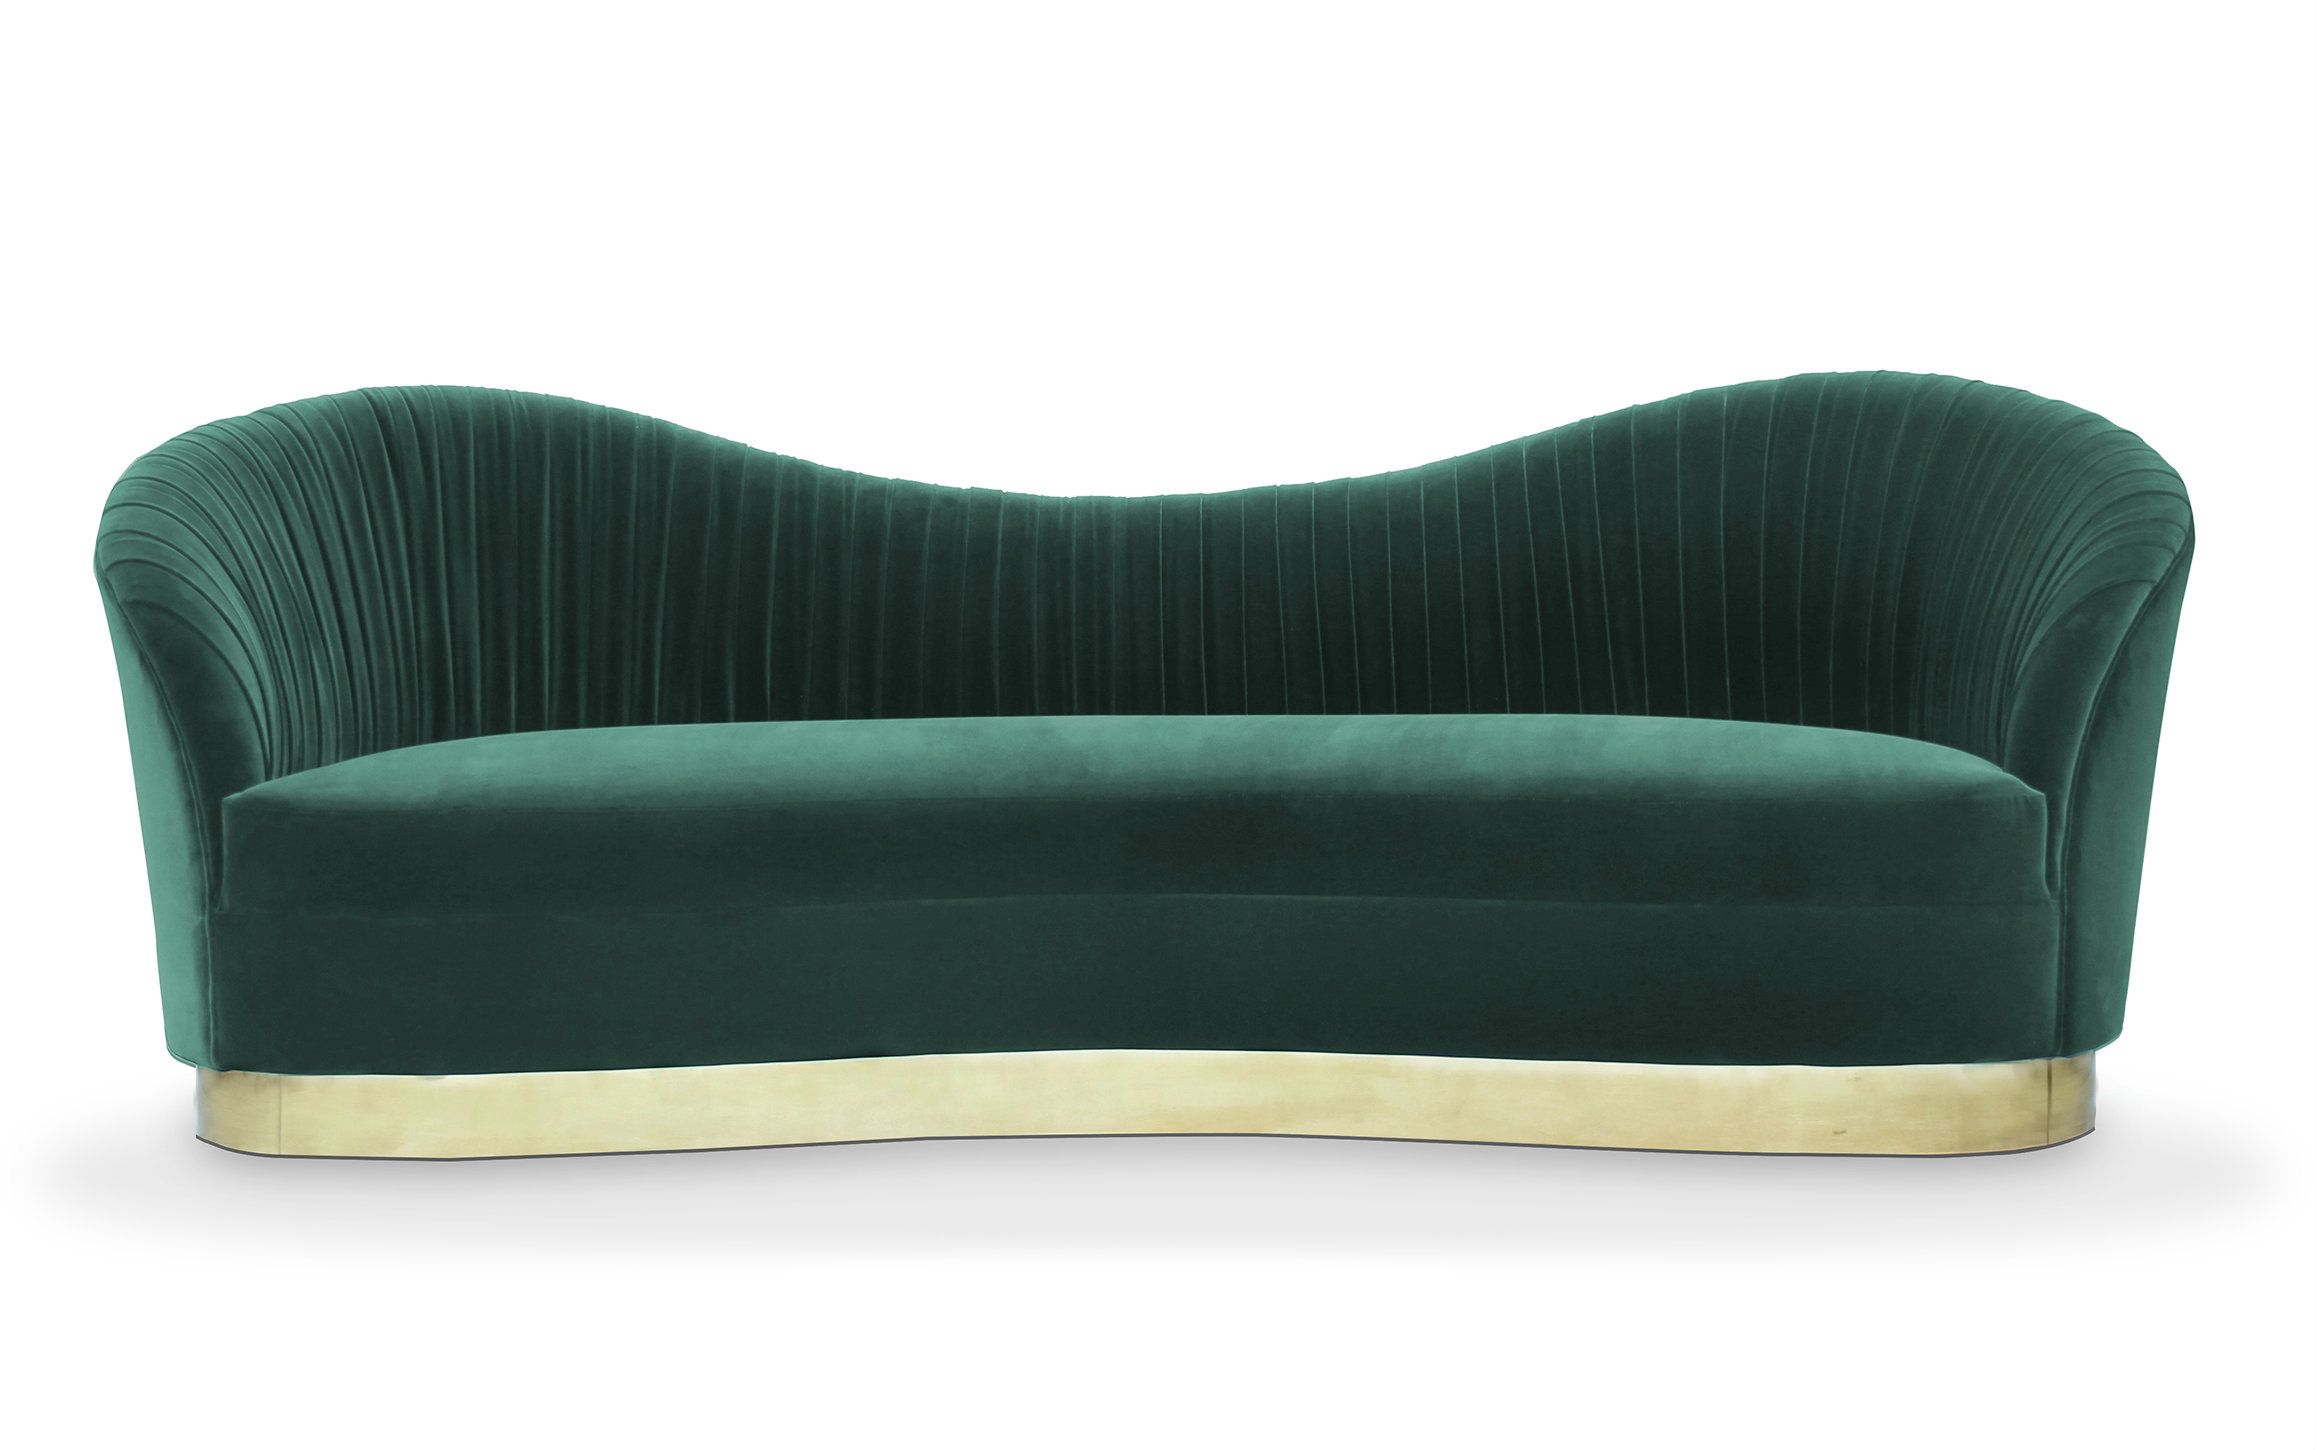 The Kelly sofa's fluid curves are harmoniously matched by sumptuous pleated waves of rich lush meadow upholstery.